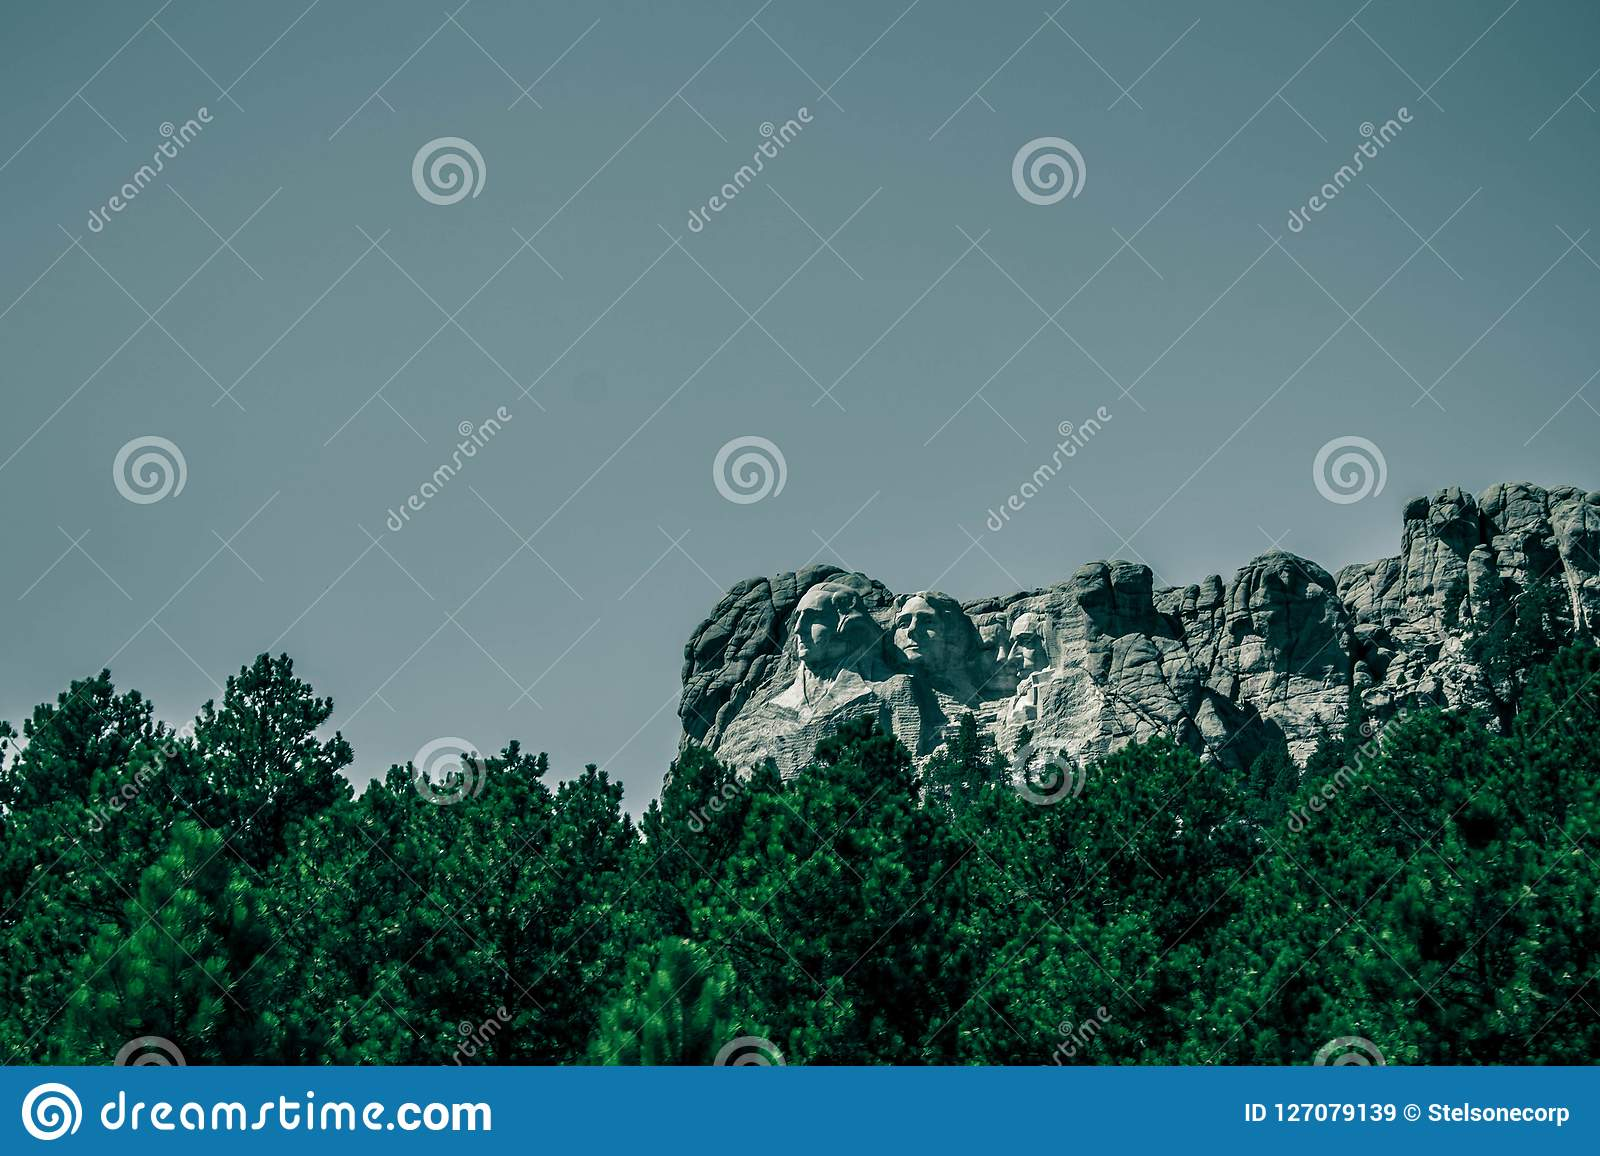 monotone photo of Mount Rushmore , view from the road